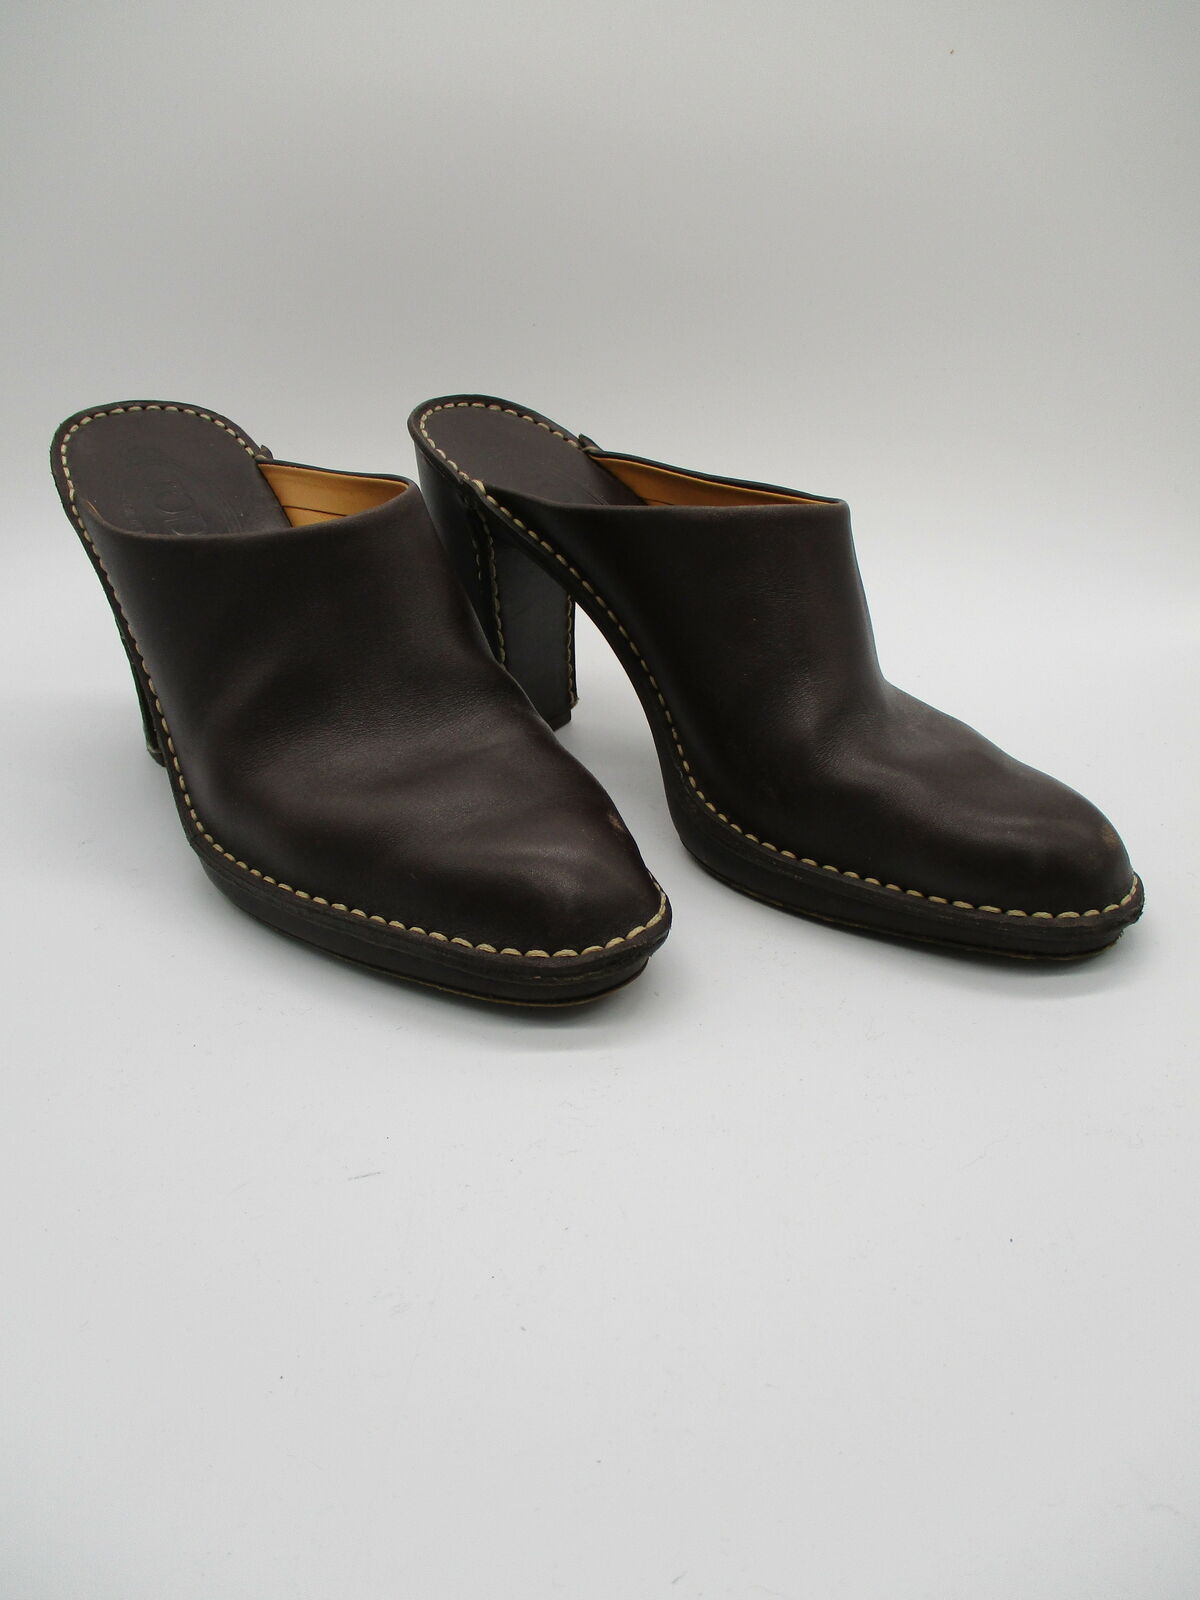 TODS brown leather block heel mules sz 40.5 - image 4